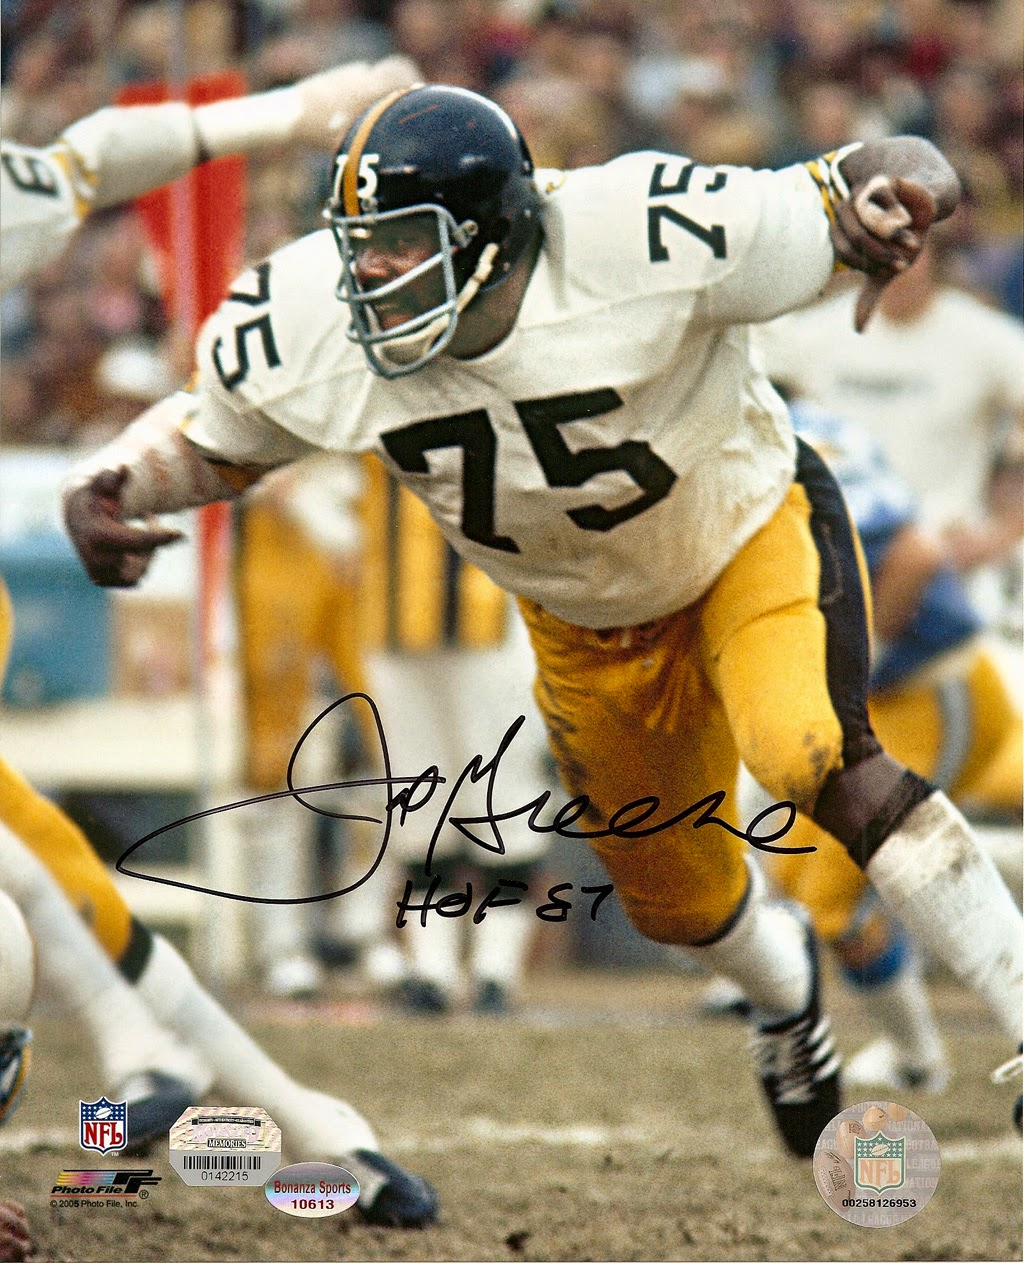 Mean Joe Greene #78 Pittsburg Steelers